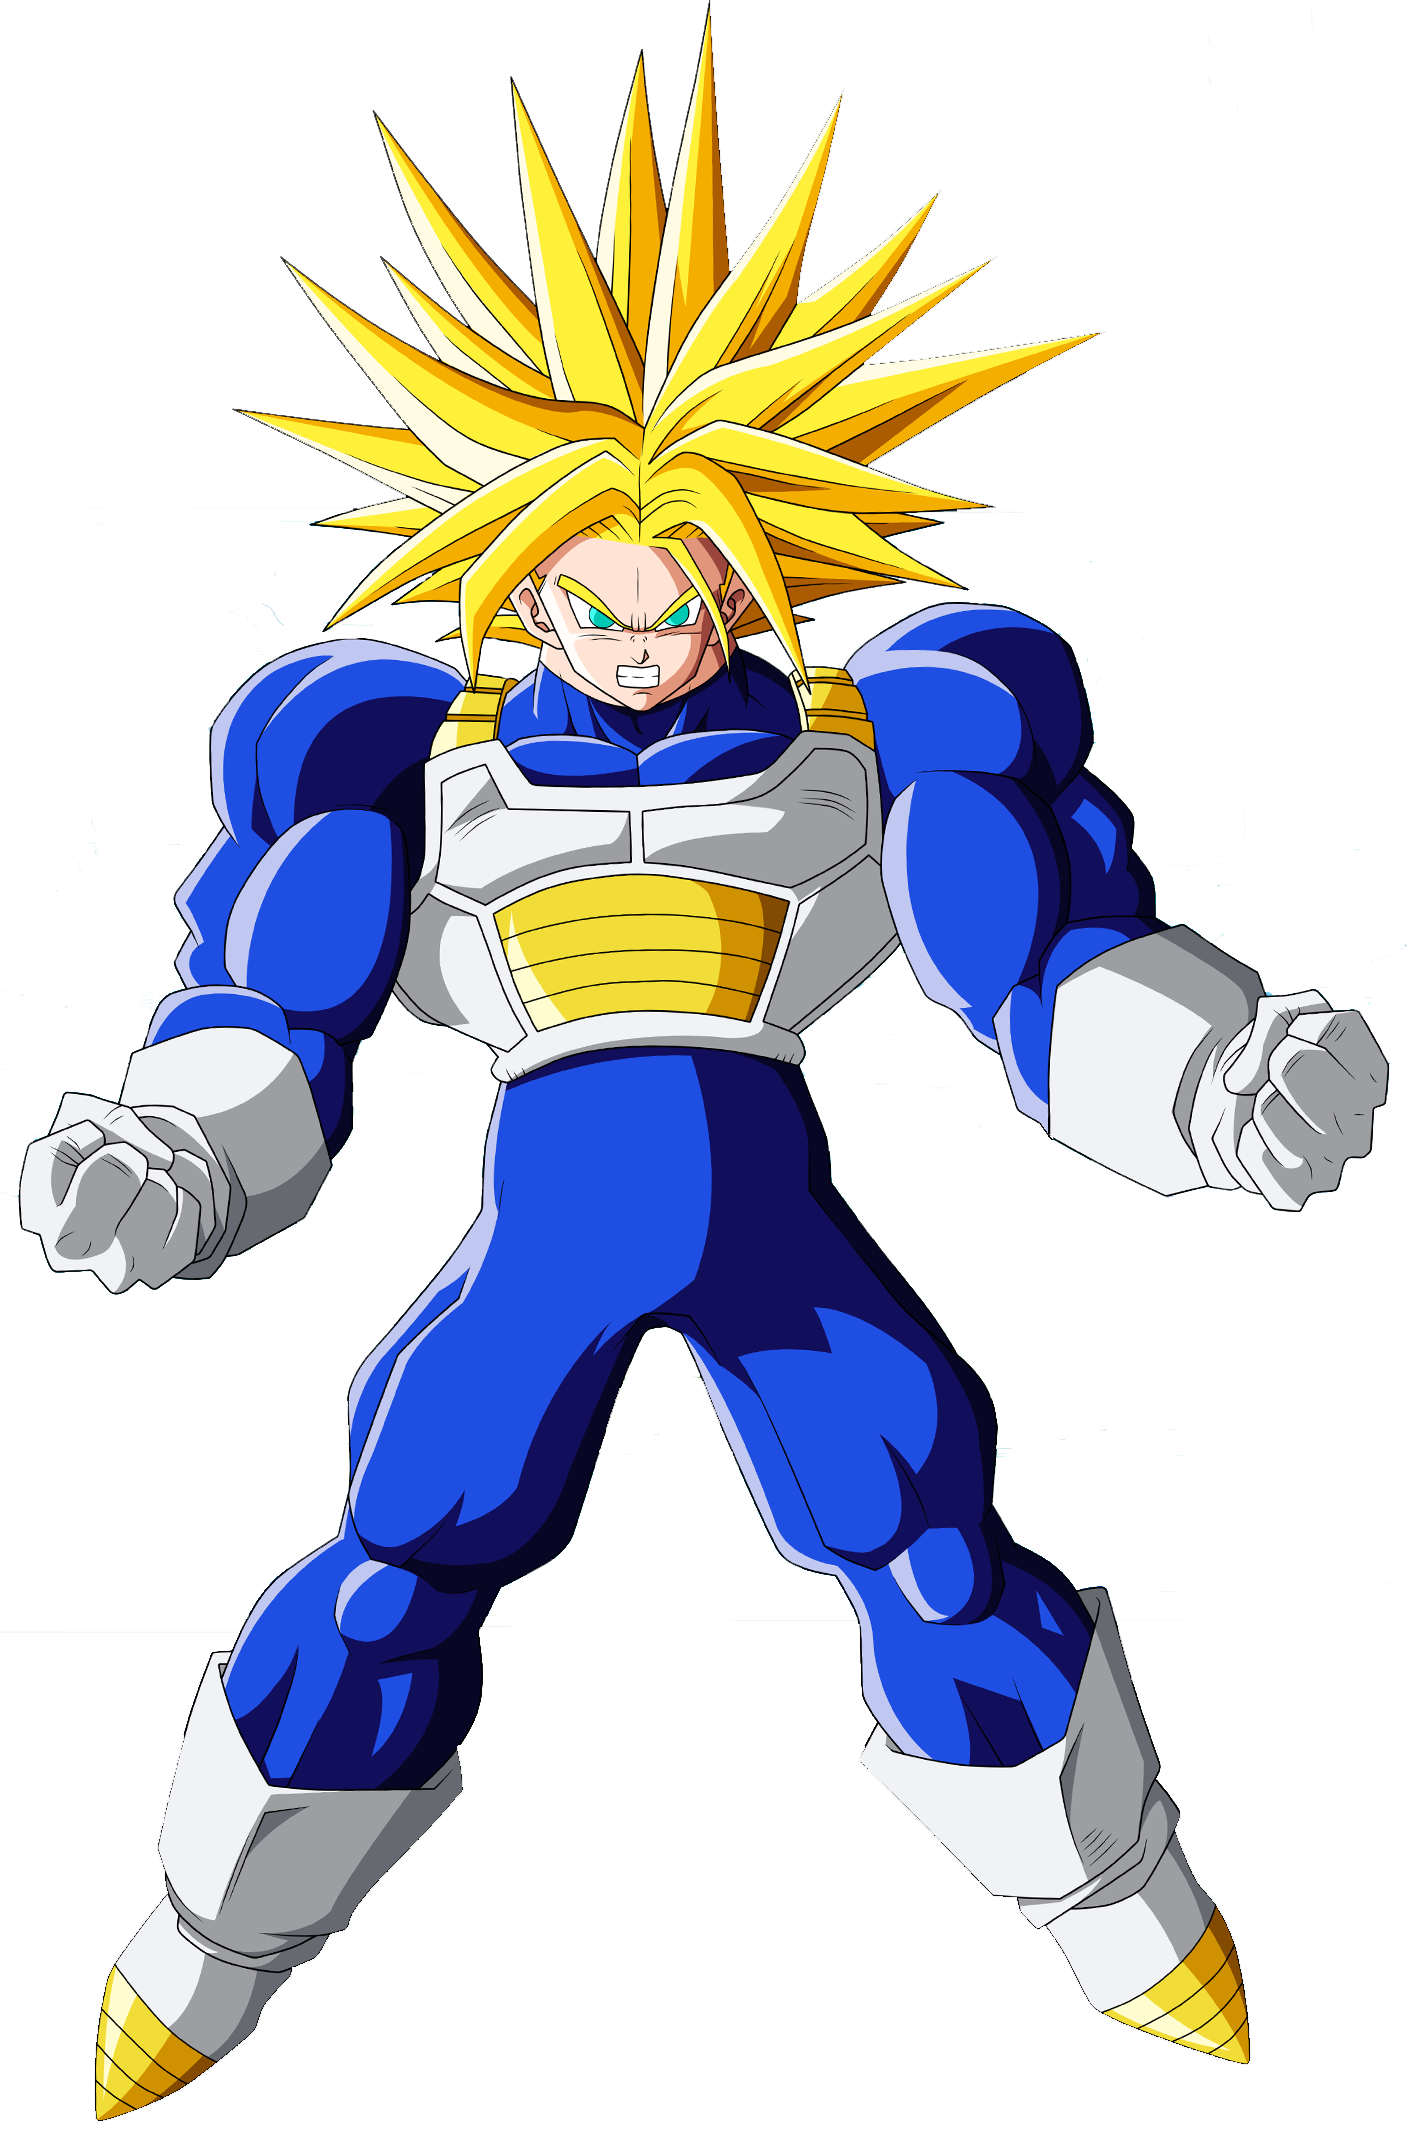 trunks del futuro convertido en ultra super saiyajin usuarios trunks ...